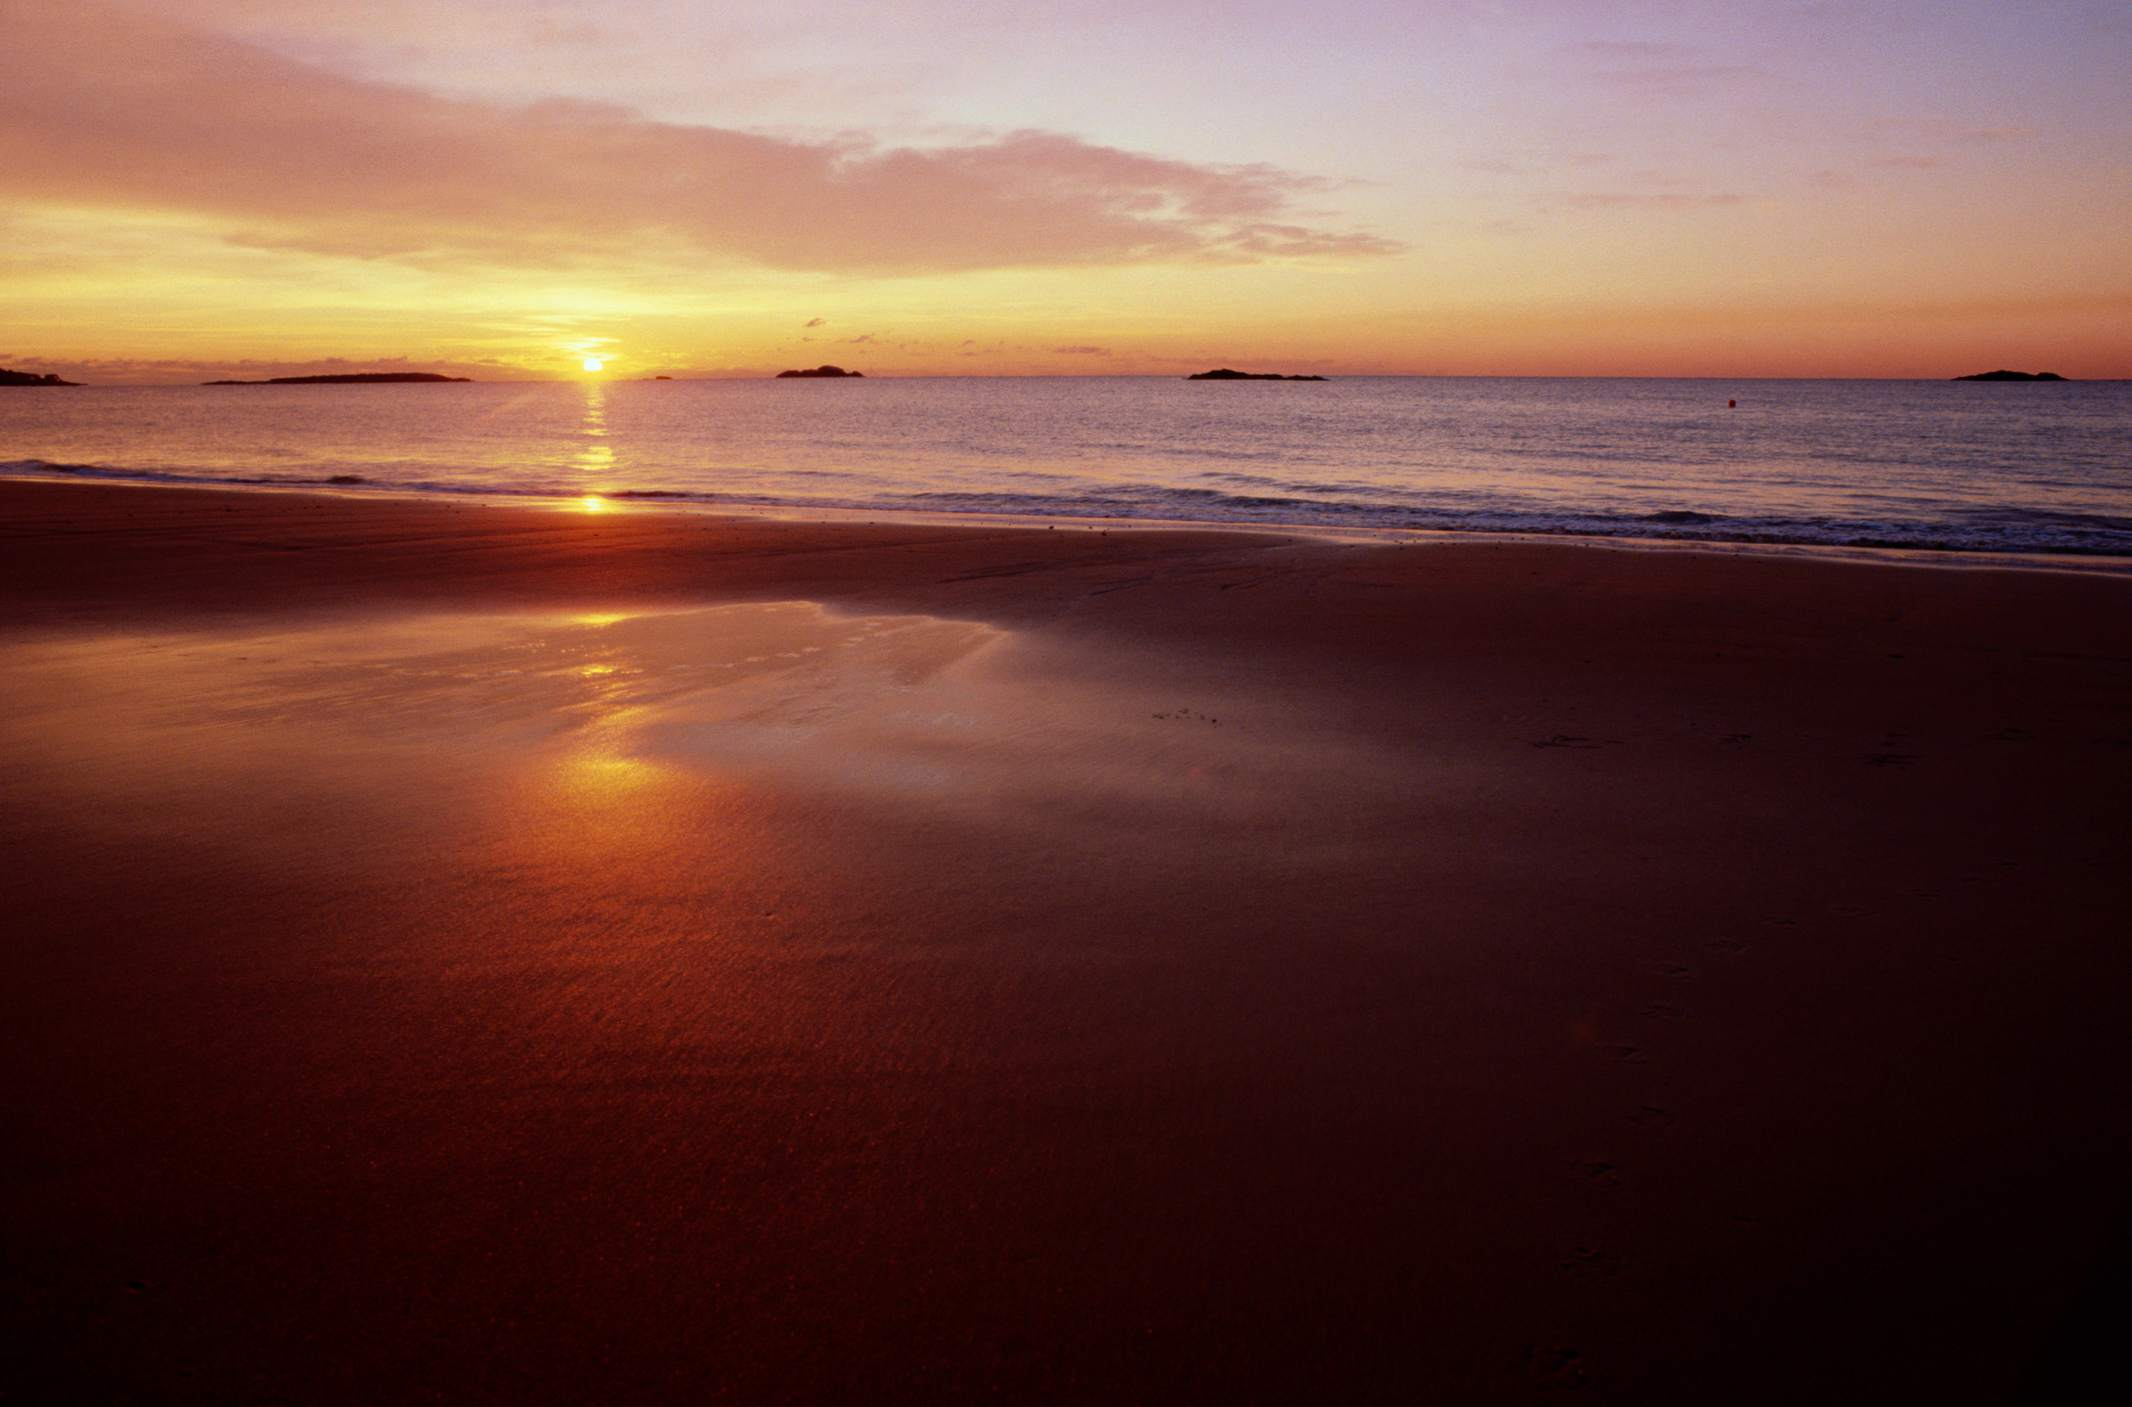 Manchester-by-the-sea, Singing Beach, sunrise